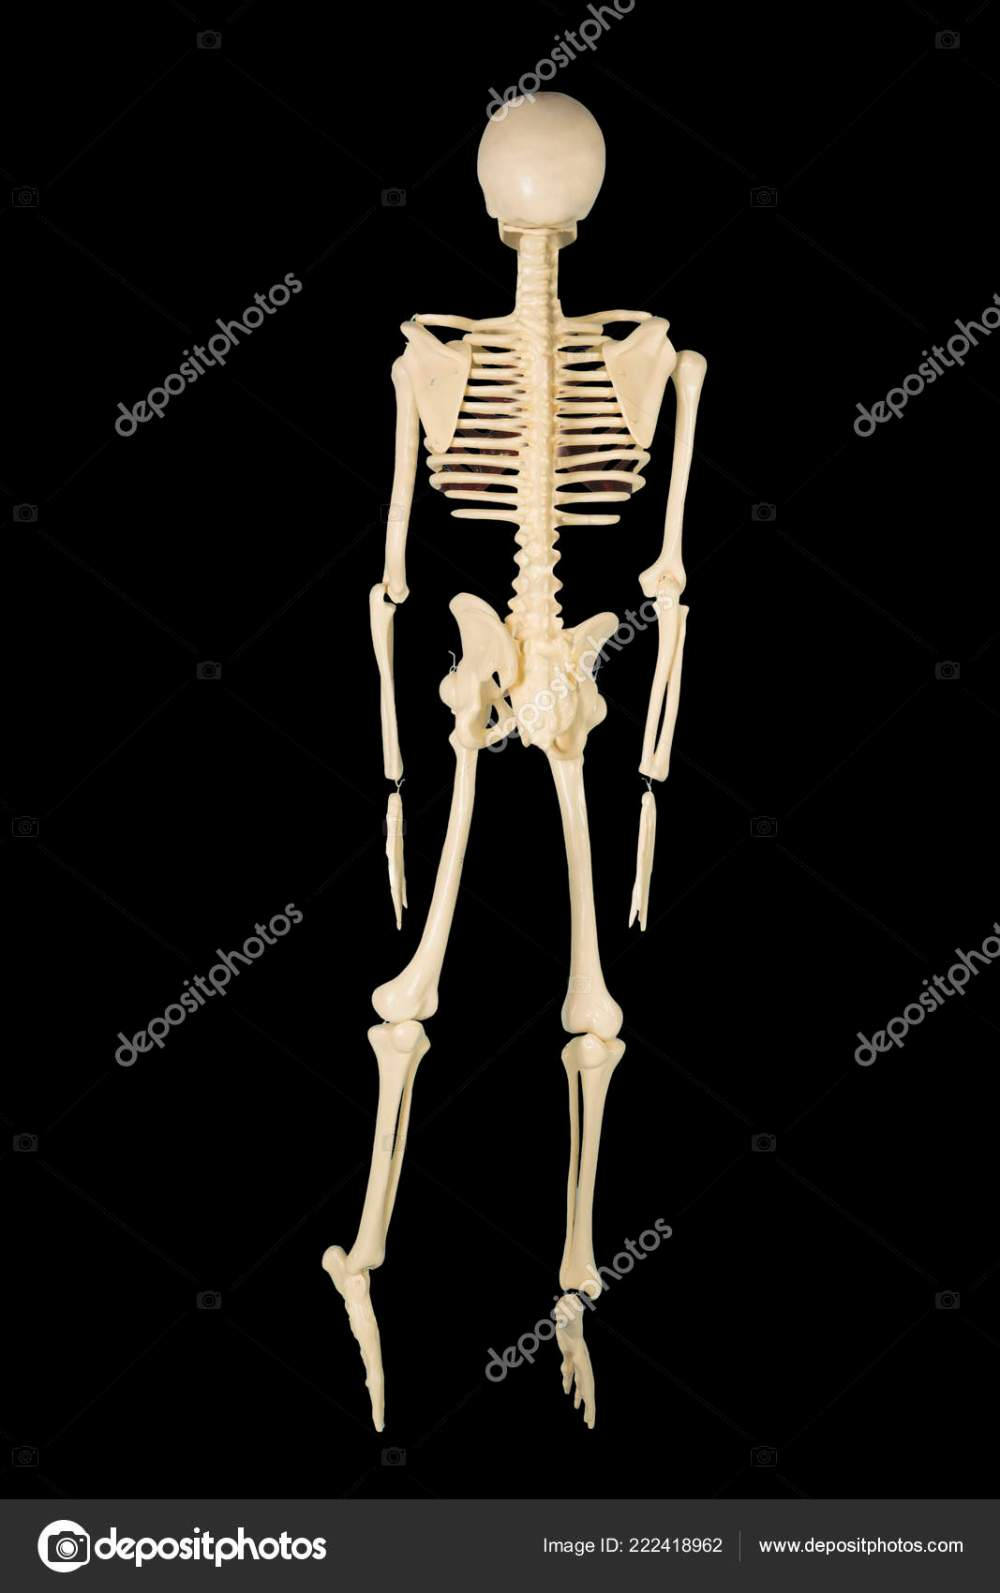 medium resolution of back view human bone structure studio dark background stock photo